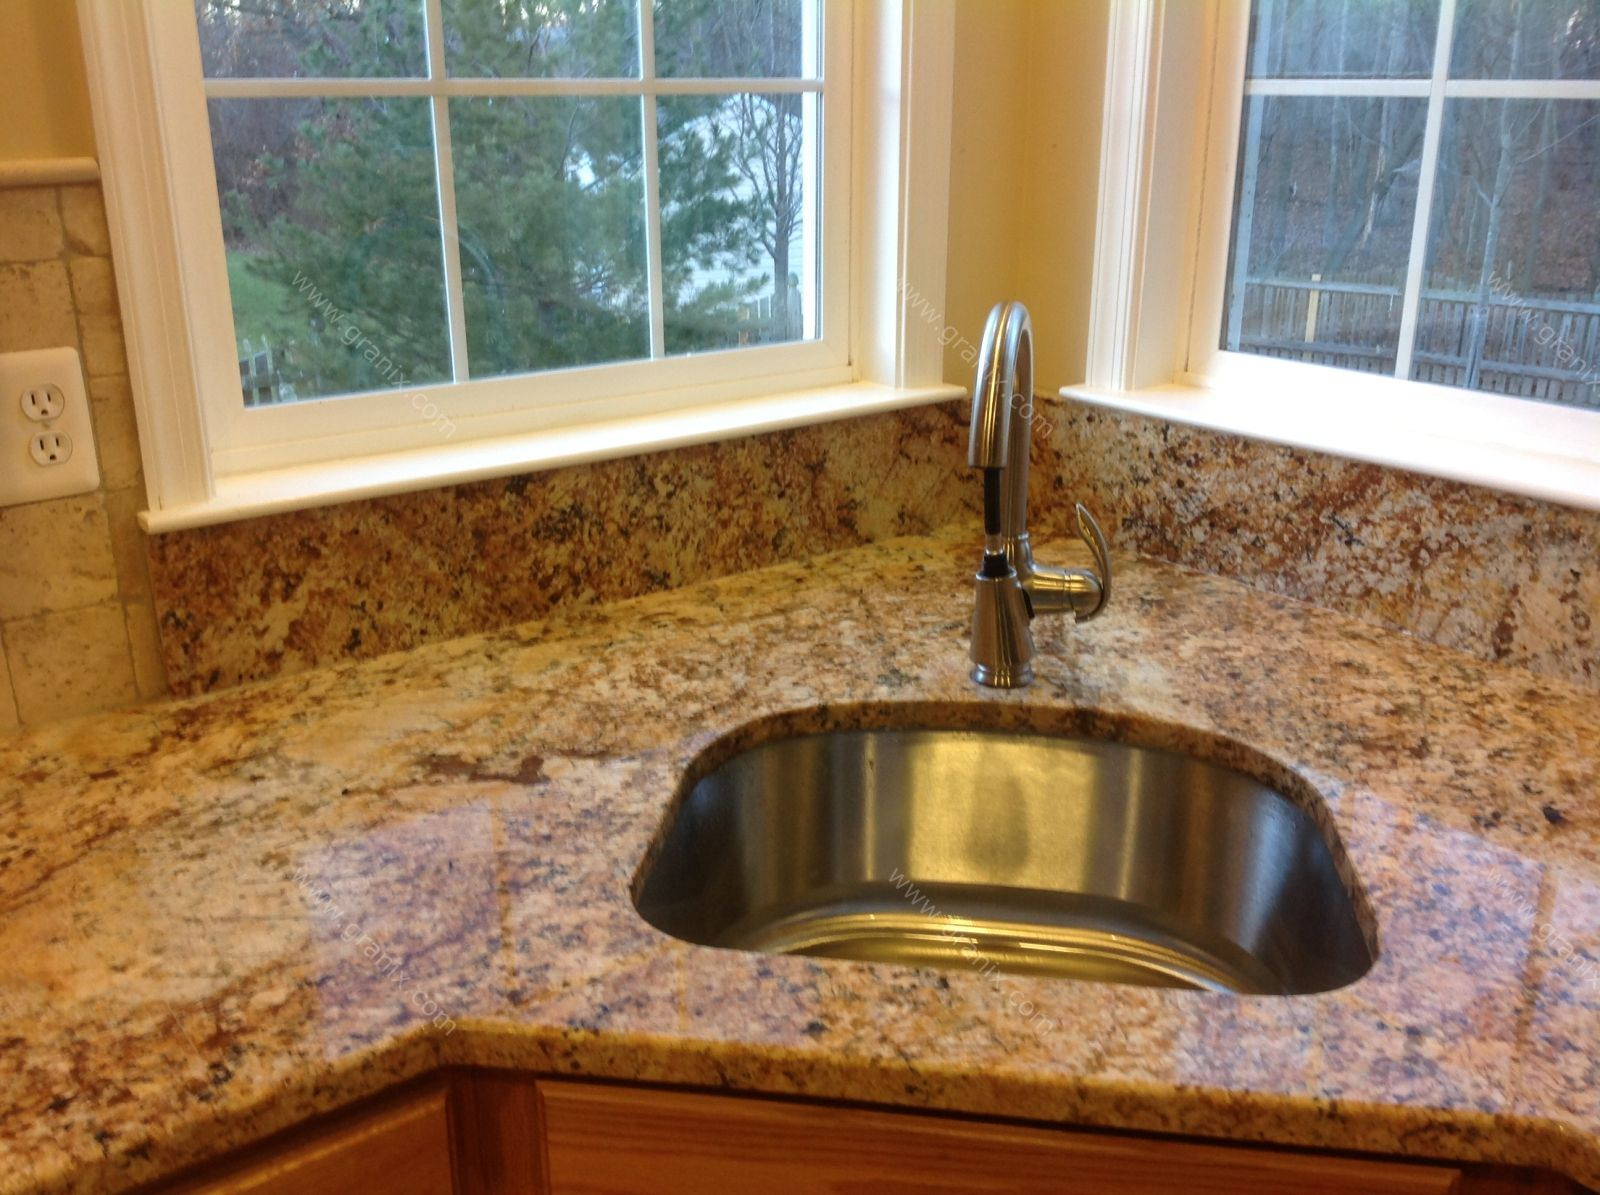 Ideas For Kitchen Backsplashes With Granite Countertops Black 43granite 43countertops 43backsplash 43ideas Diana G